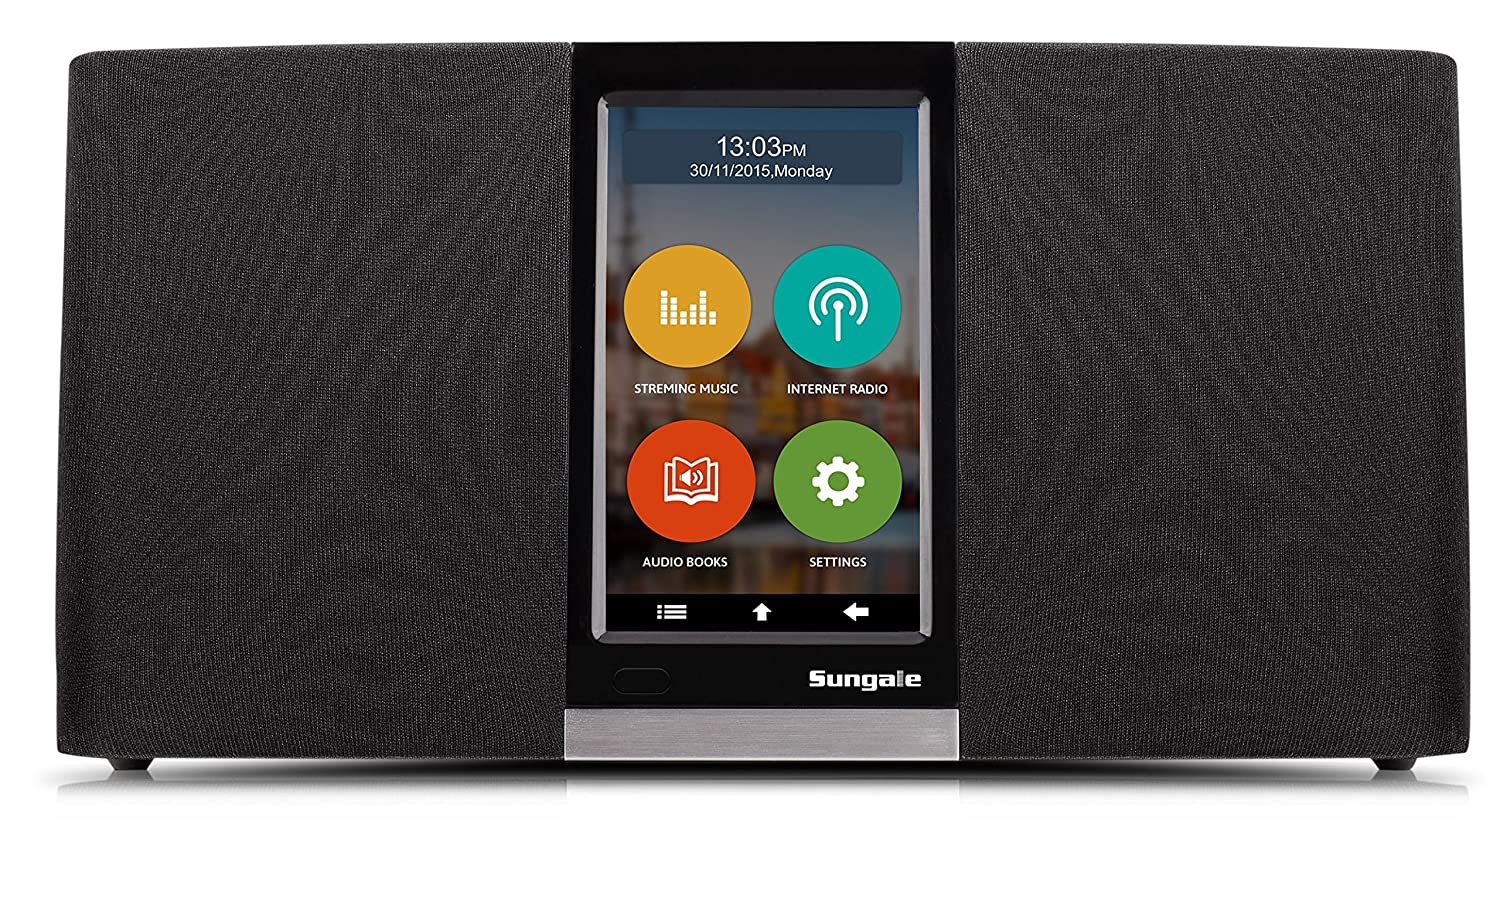 Sungale Wi-Fi Internet Radio with User Friendly Touchscreen Navigation, listen to thousands of radio stations & streaming music through an assortment of popular apps KWS433